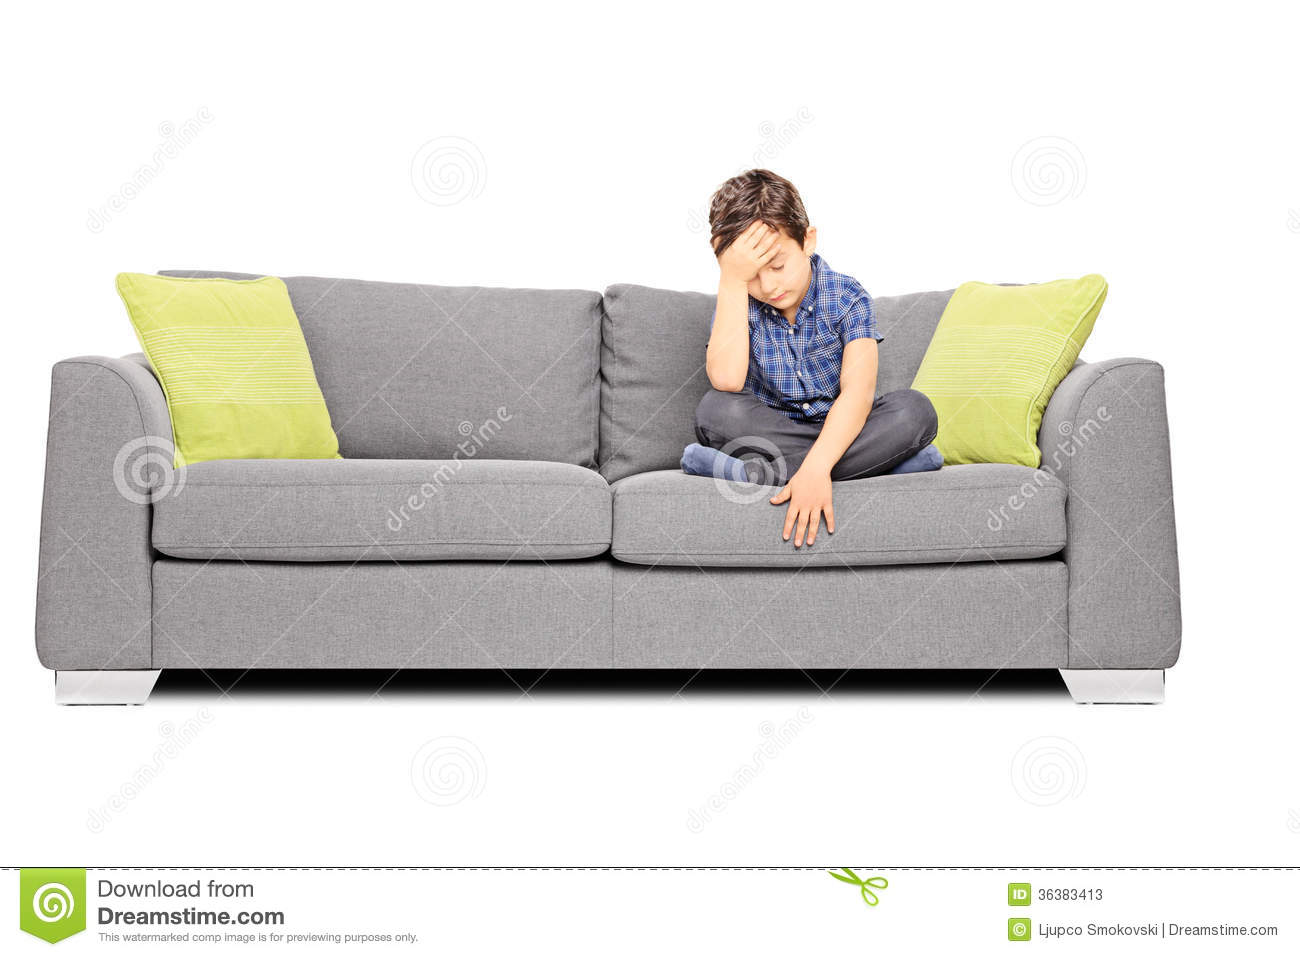 sad boy sitting on a couch stock photos image 36383413. Black Bedroom Furniture Sets. Home Design Ideas